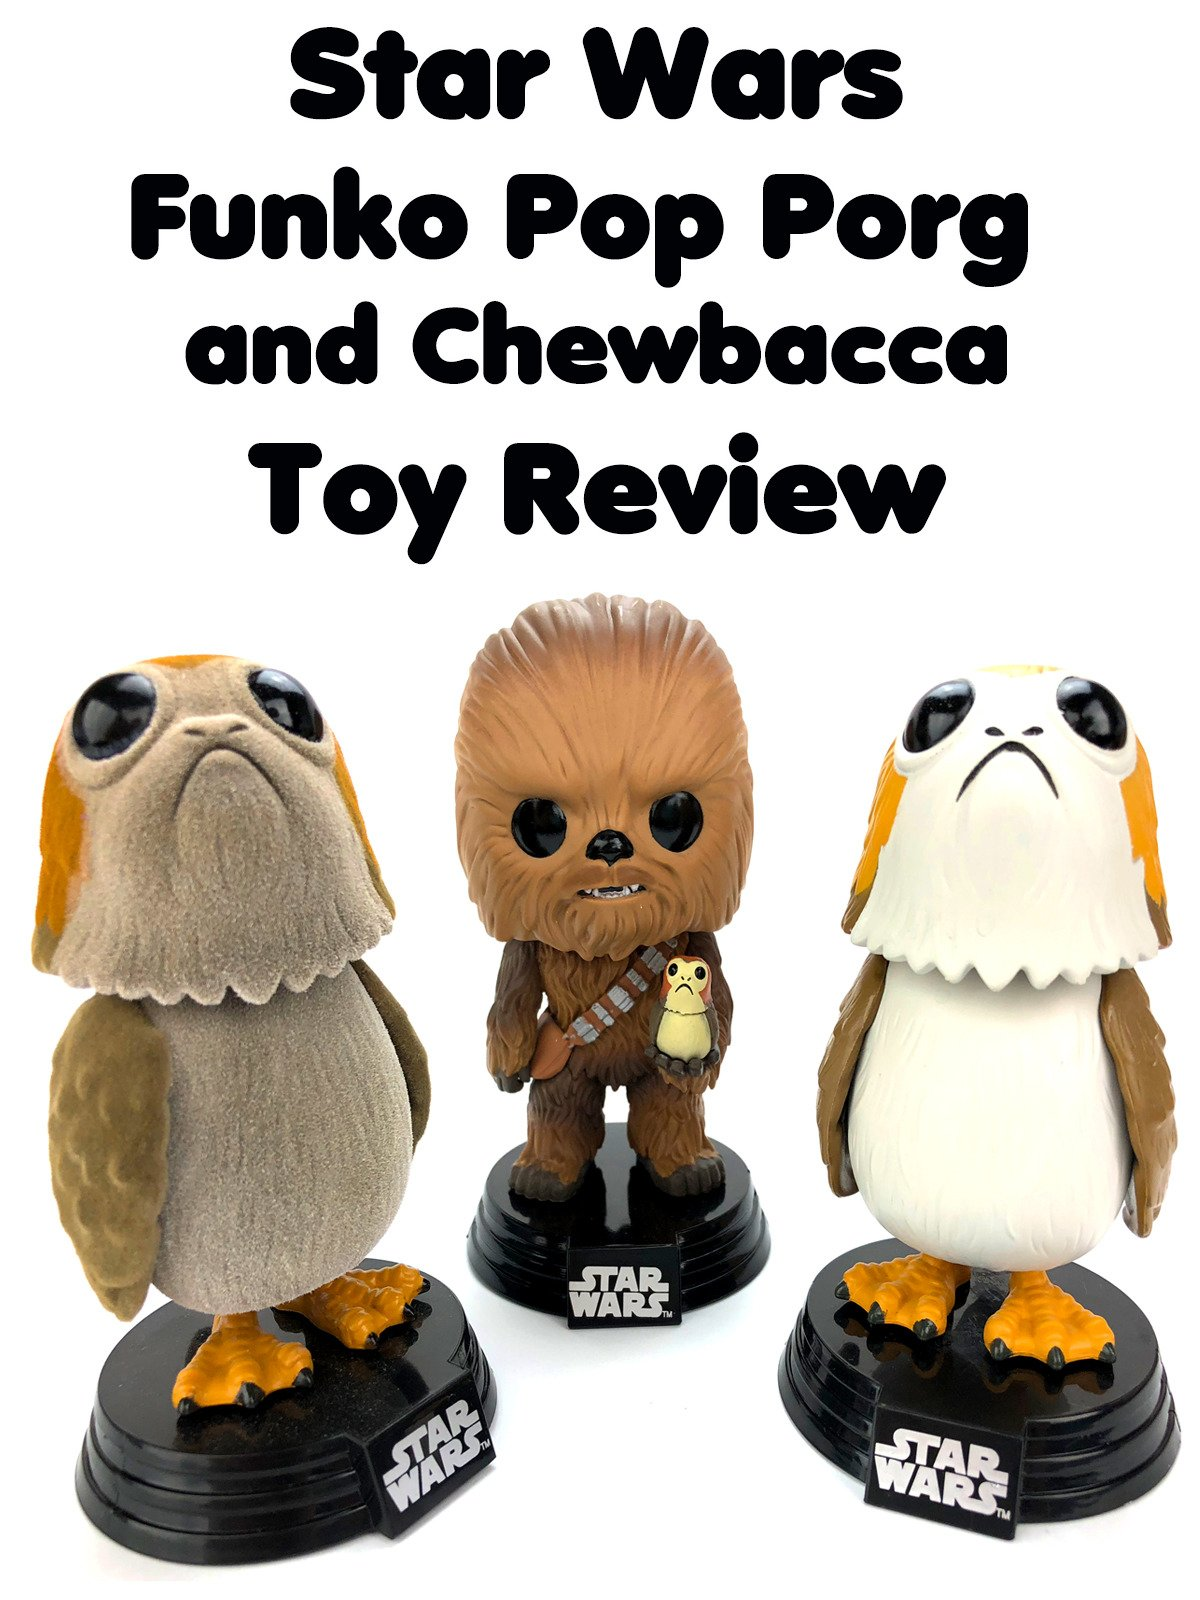 Review: Star Wars Funko Pop Porg and Chewbacca Toy Review on Amazon Prime Video UK